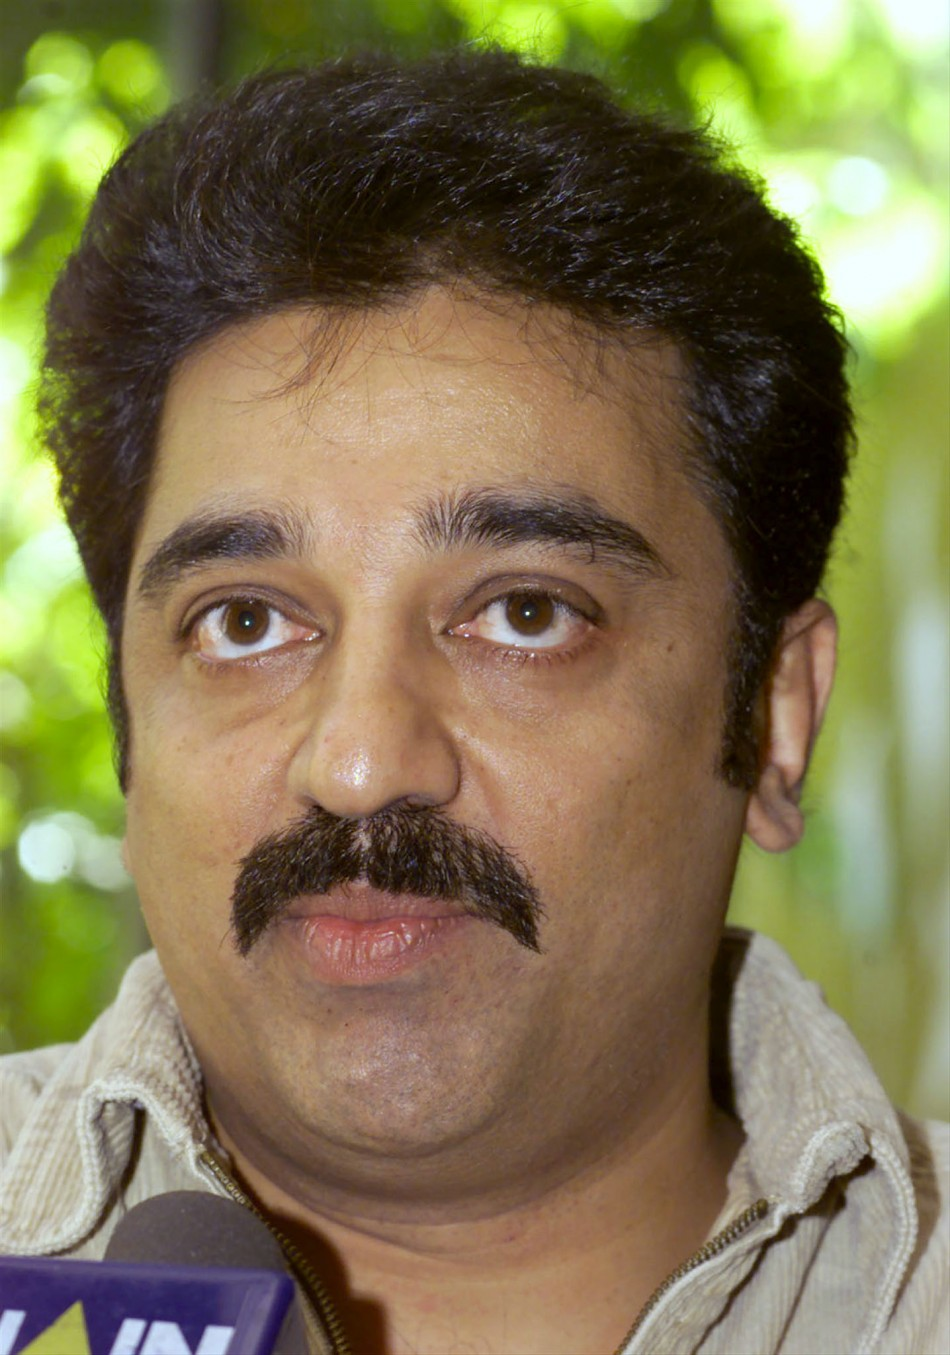 kamal haasan heightkamal haasan height, kamal haasan films, kamal haasan twitter, kamal haasan, kamal haasan wiki, kamal haasan daughters, kamal haasan movie list, kamal hassan movies list, kamal hassan daughter akshara haasan, kamal haasan biography, kamal haasan wife, kamal haasan film list, kamal hassan movie list wiki, kamal haasan movies, kamal haasan facebook, kamal haasan songs, kamal haasan real name, kamal haasan family, kamal haasan quotes, kamal haasan birthday